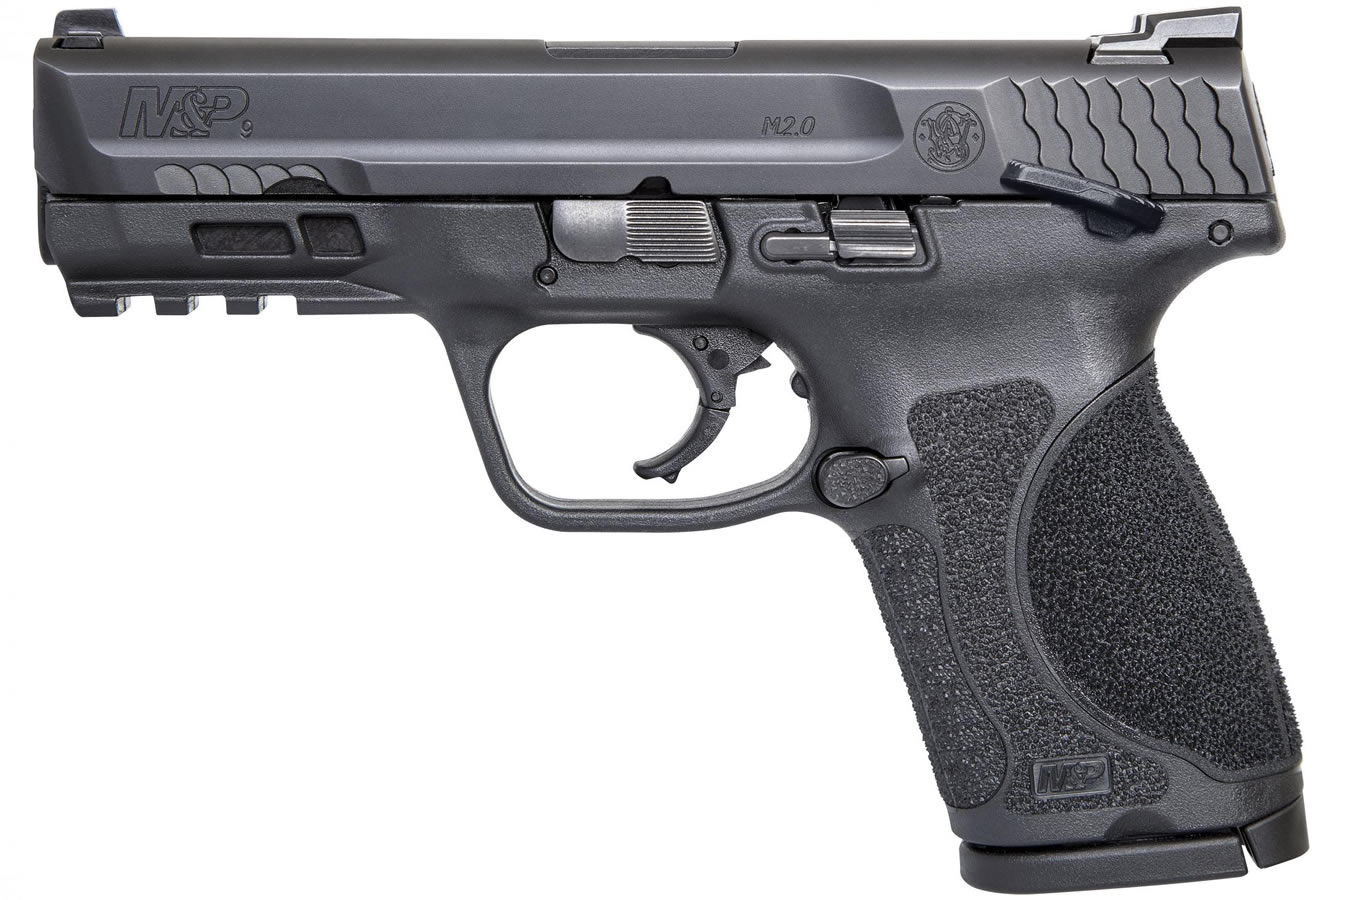 MP9 M2.0 COMPACT 9MM W/THUMB SAFETY